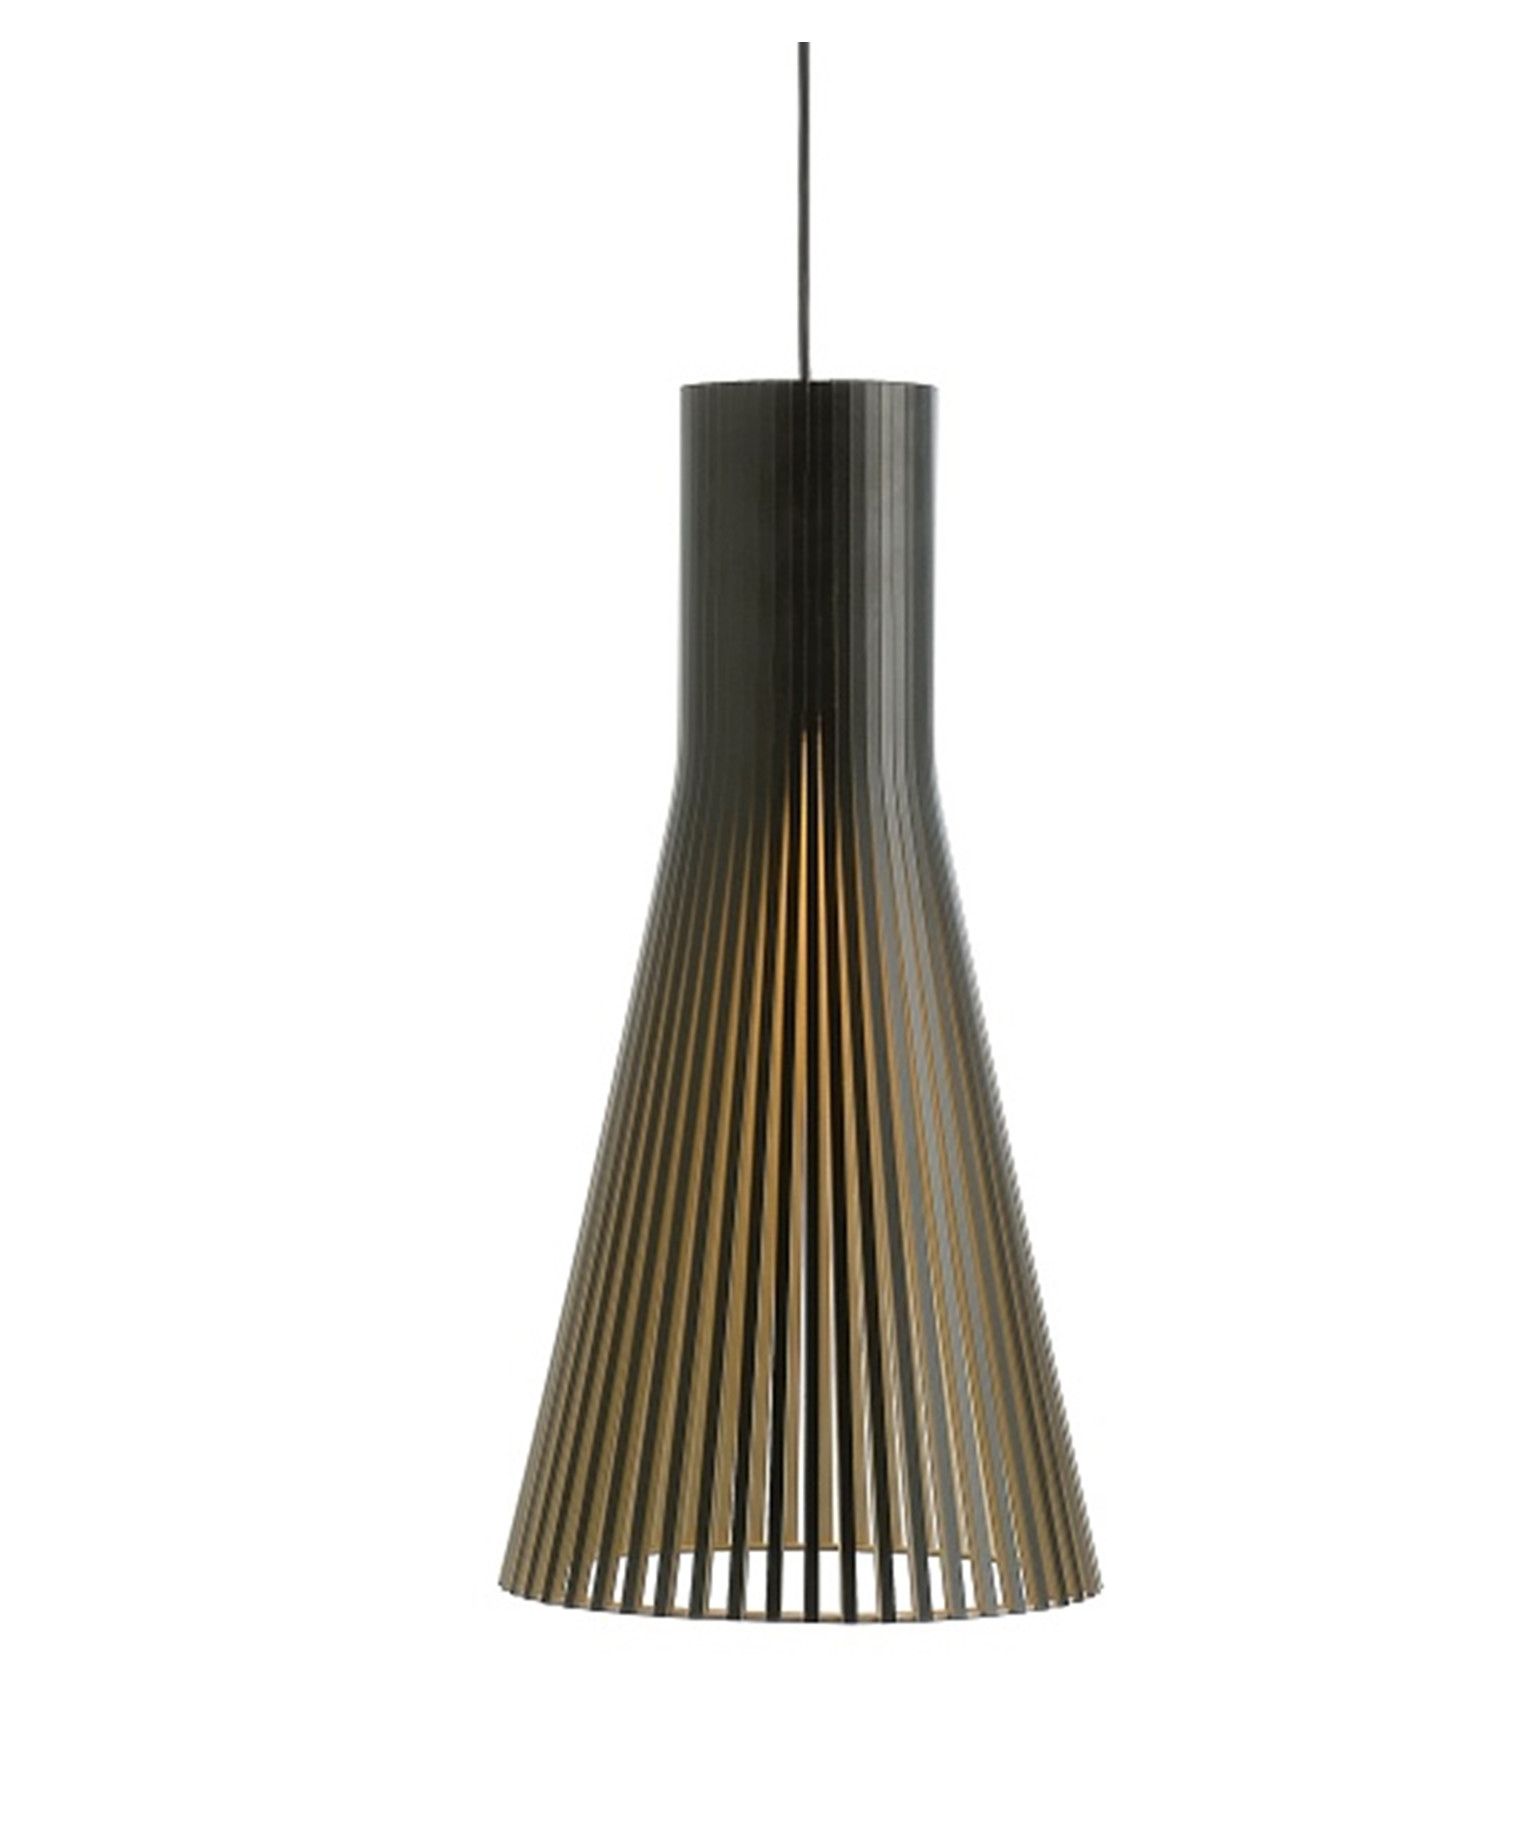 Suspension Octo Secto Lamps See Our Selection Of Secto And Octo Designer Lamps